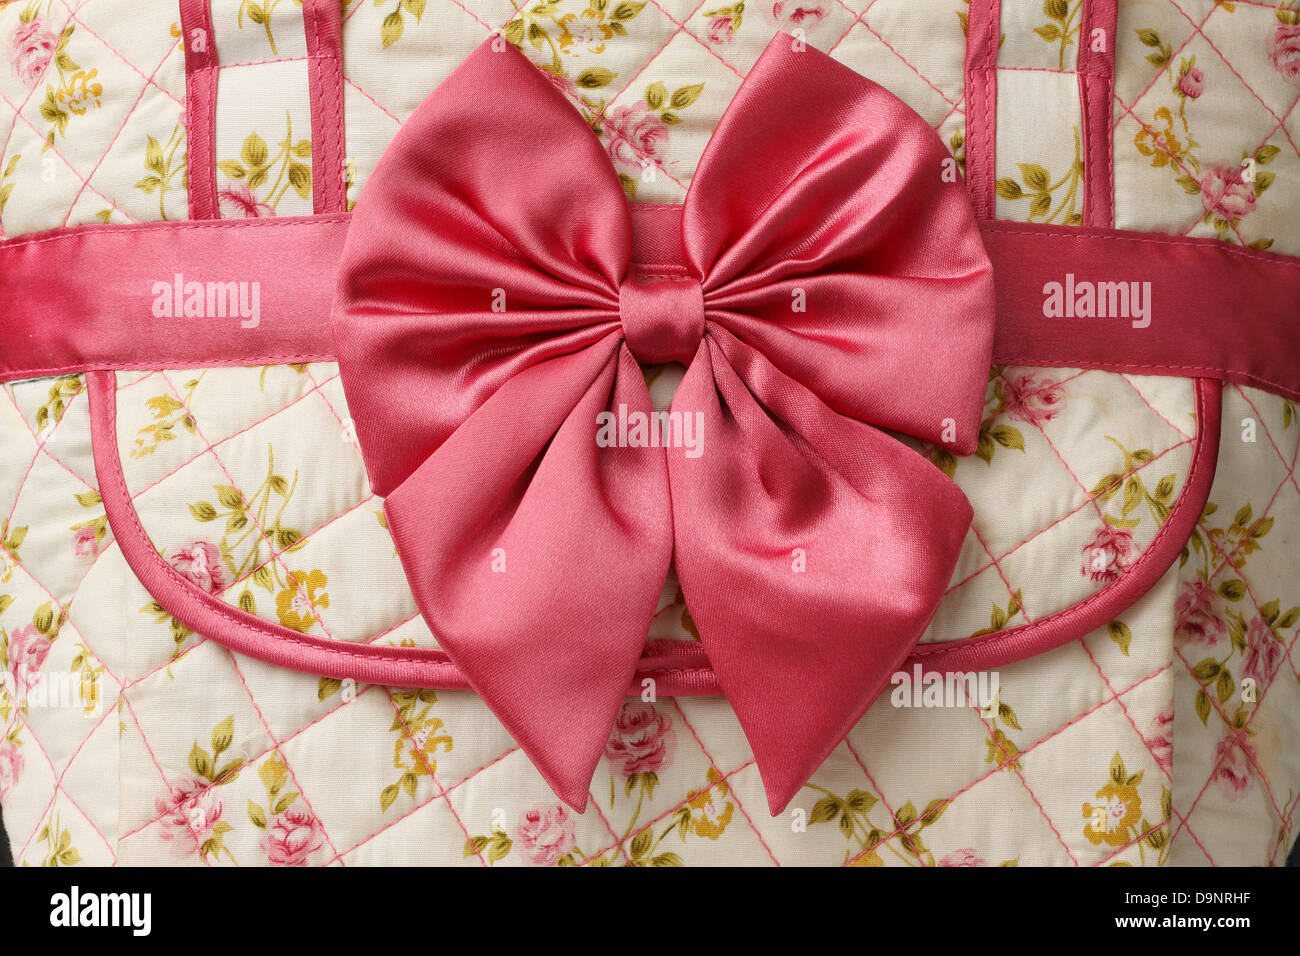 red bow handmade with fabric flower texture - Stock Image